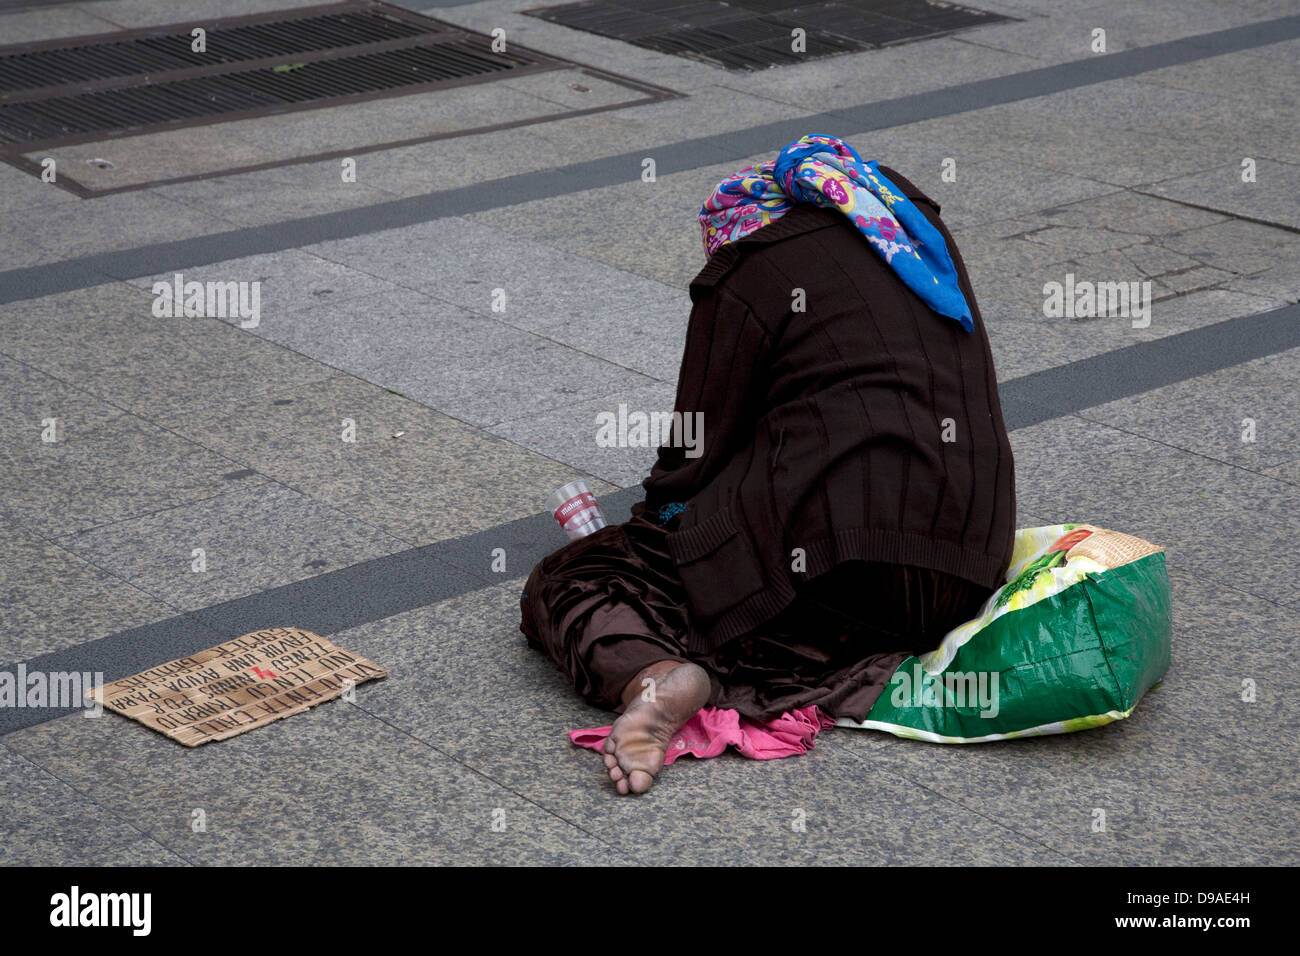 Gypsy woman begging in Madrid, Spain. - Stock Image